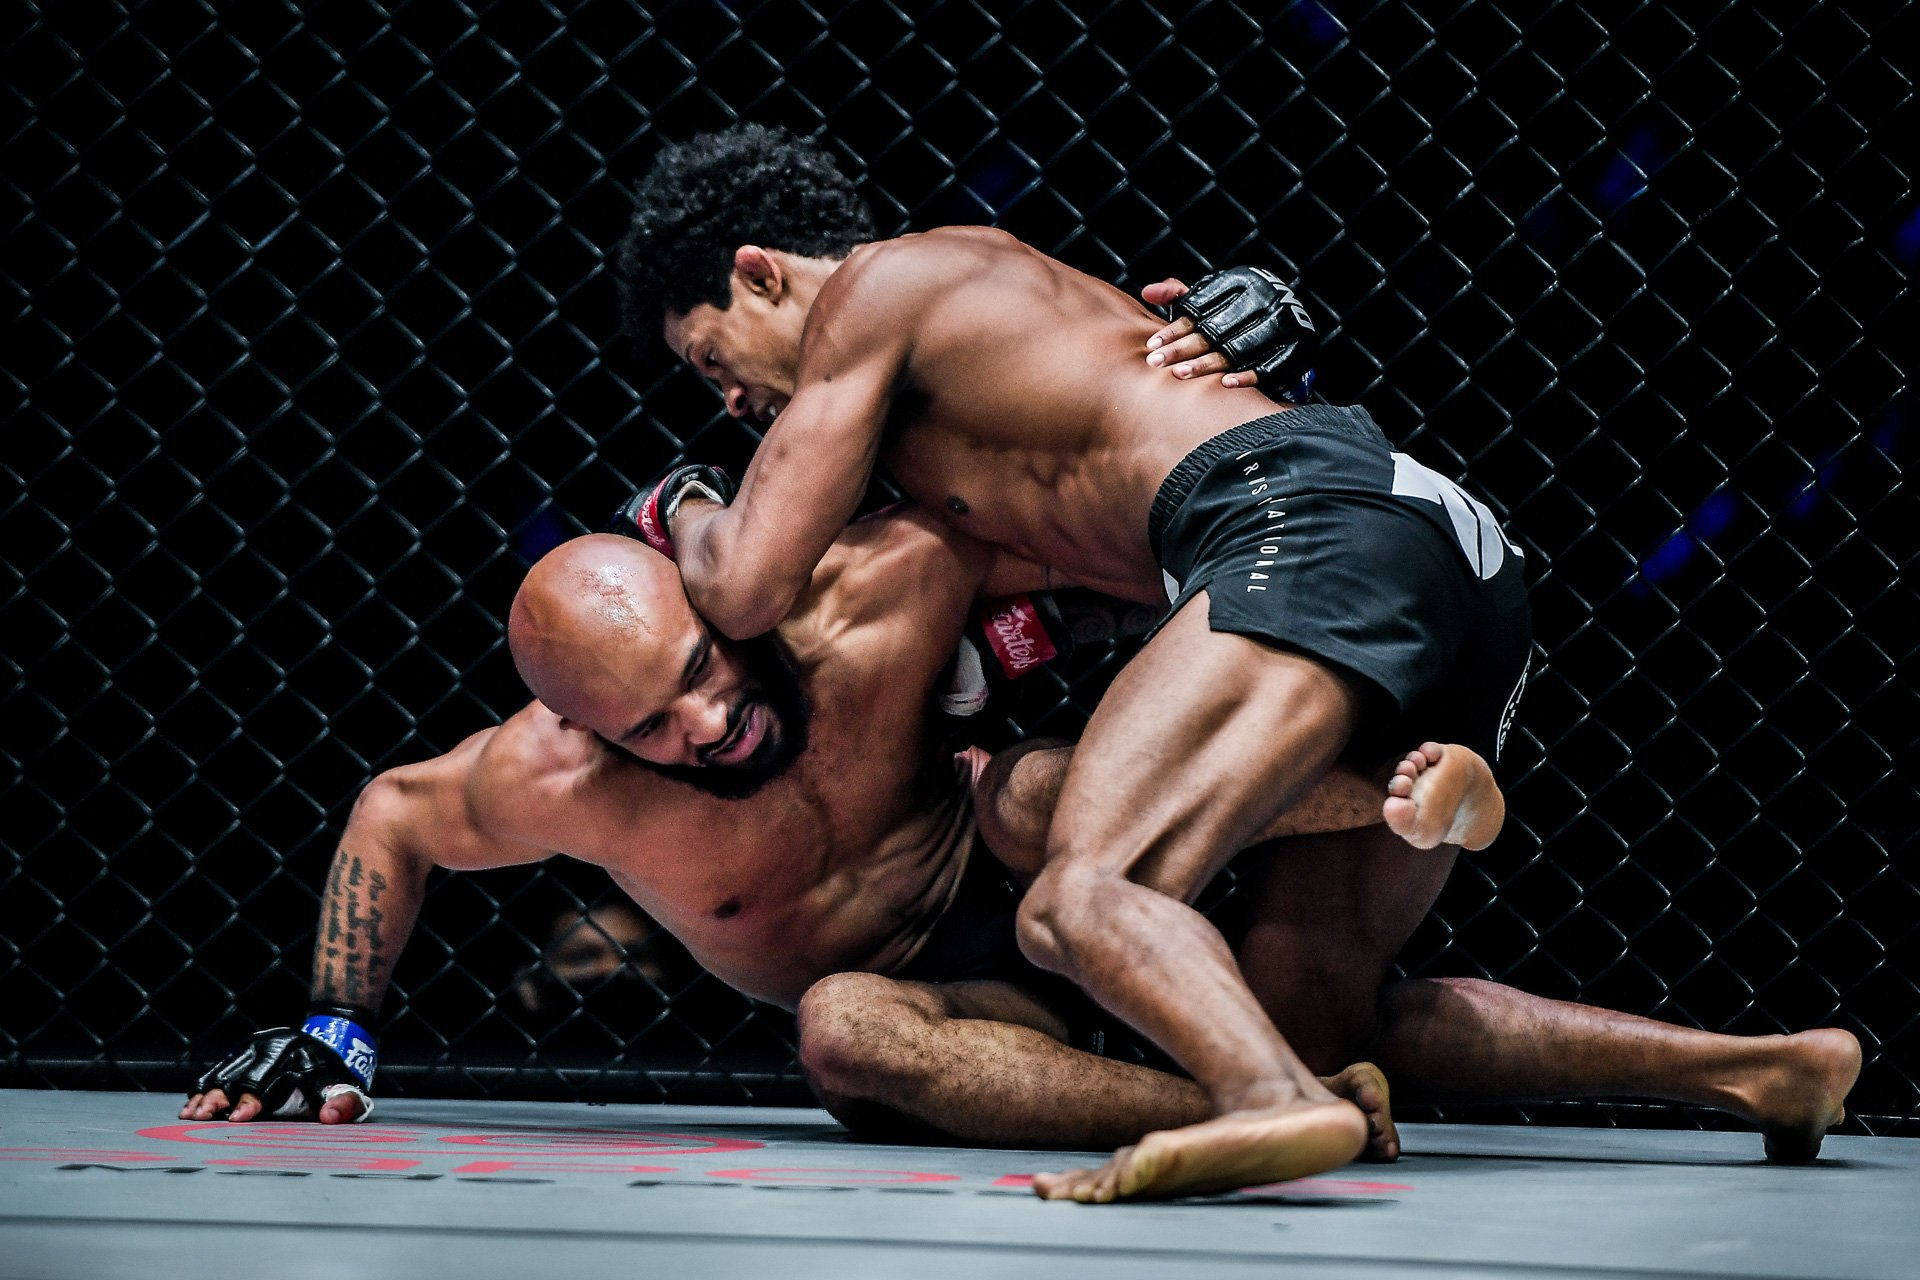 VIDEO: Demetrious Johnson Knocked Out By Adriano Moraes | FIGHT SPORTS